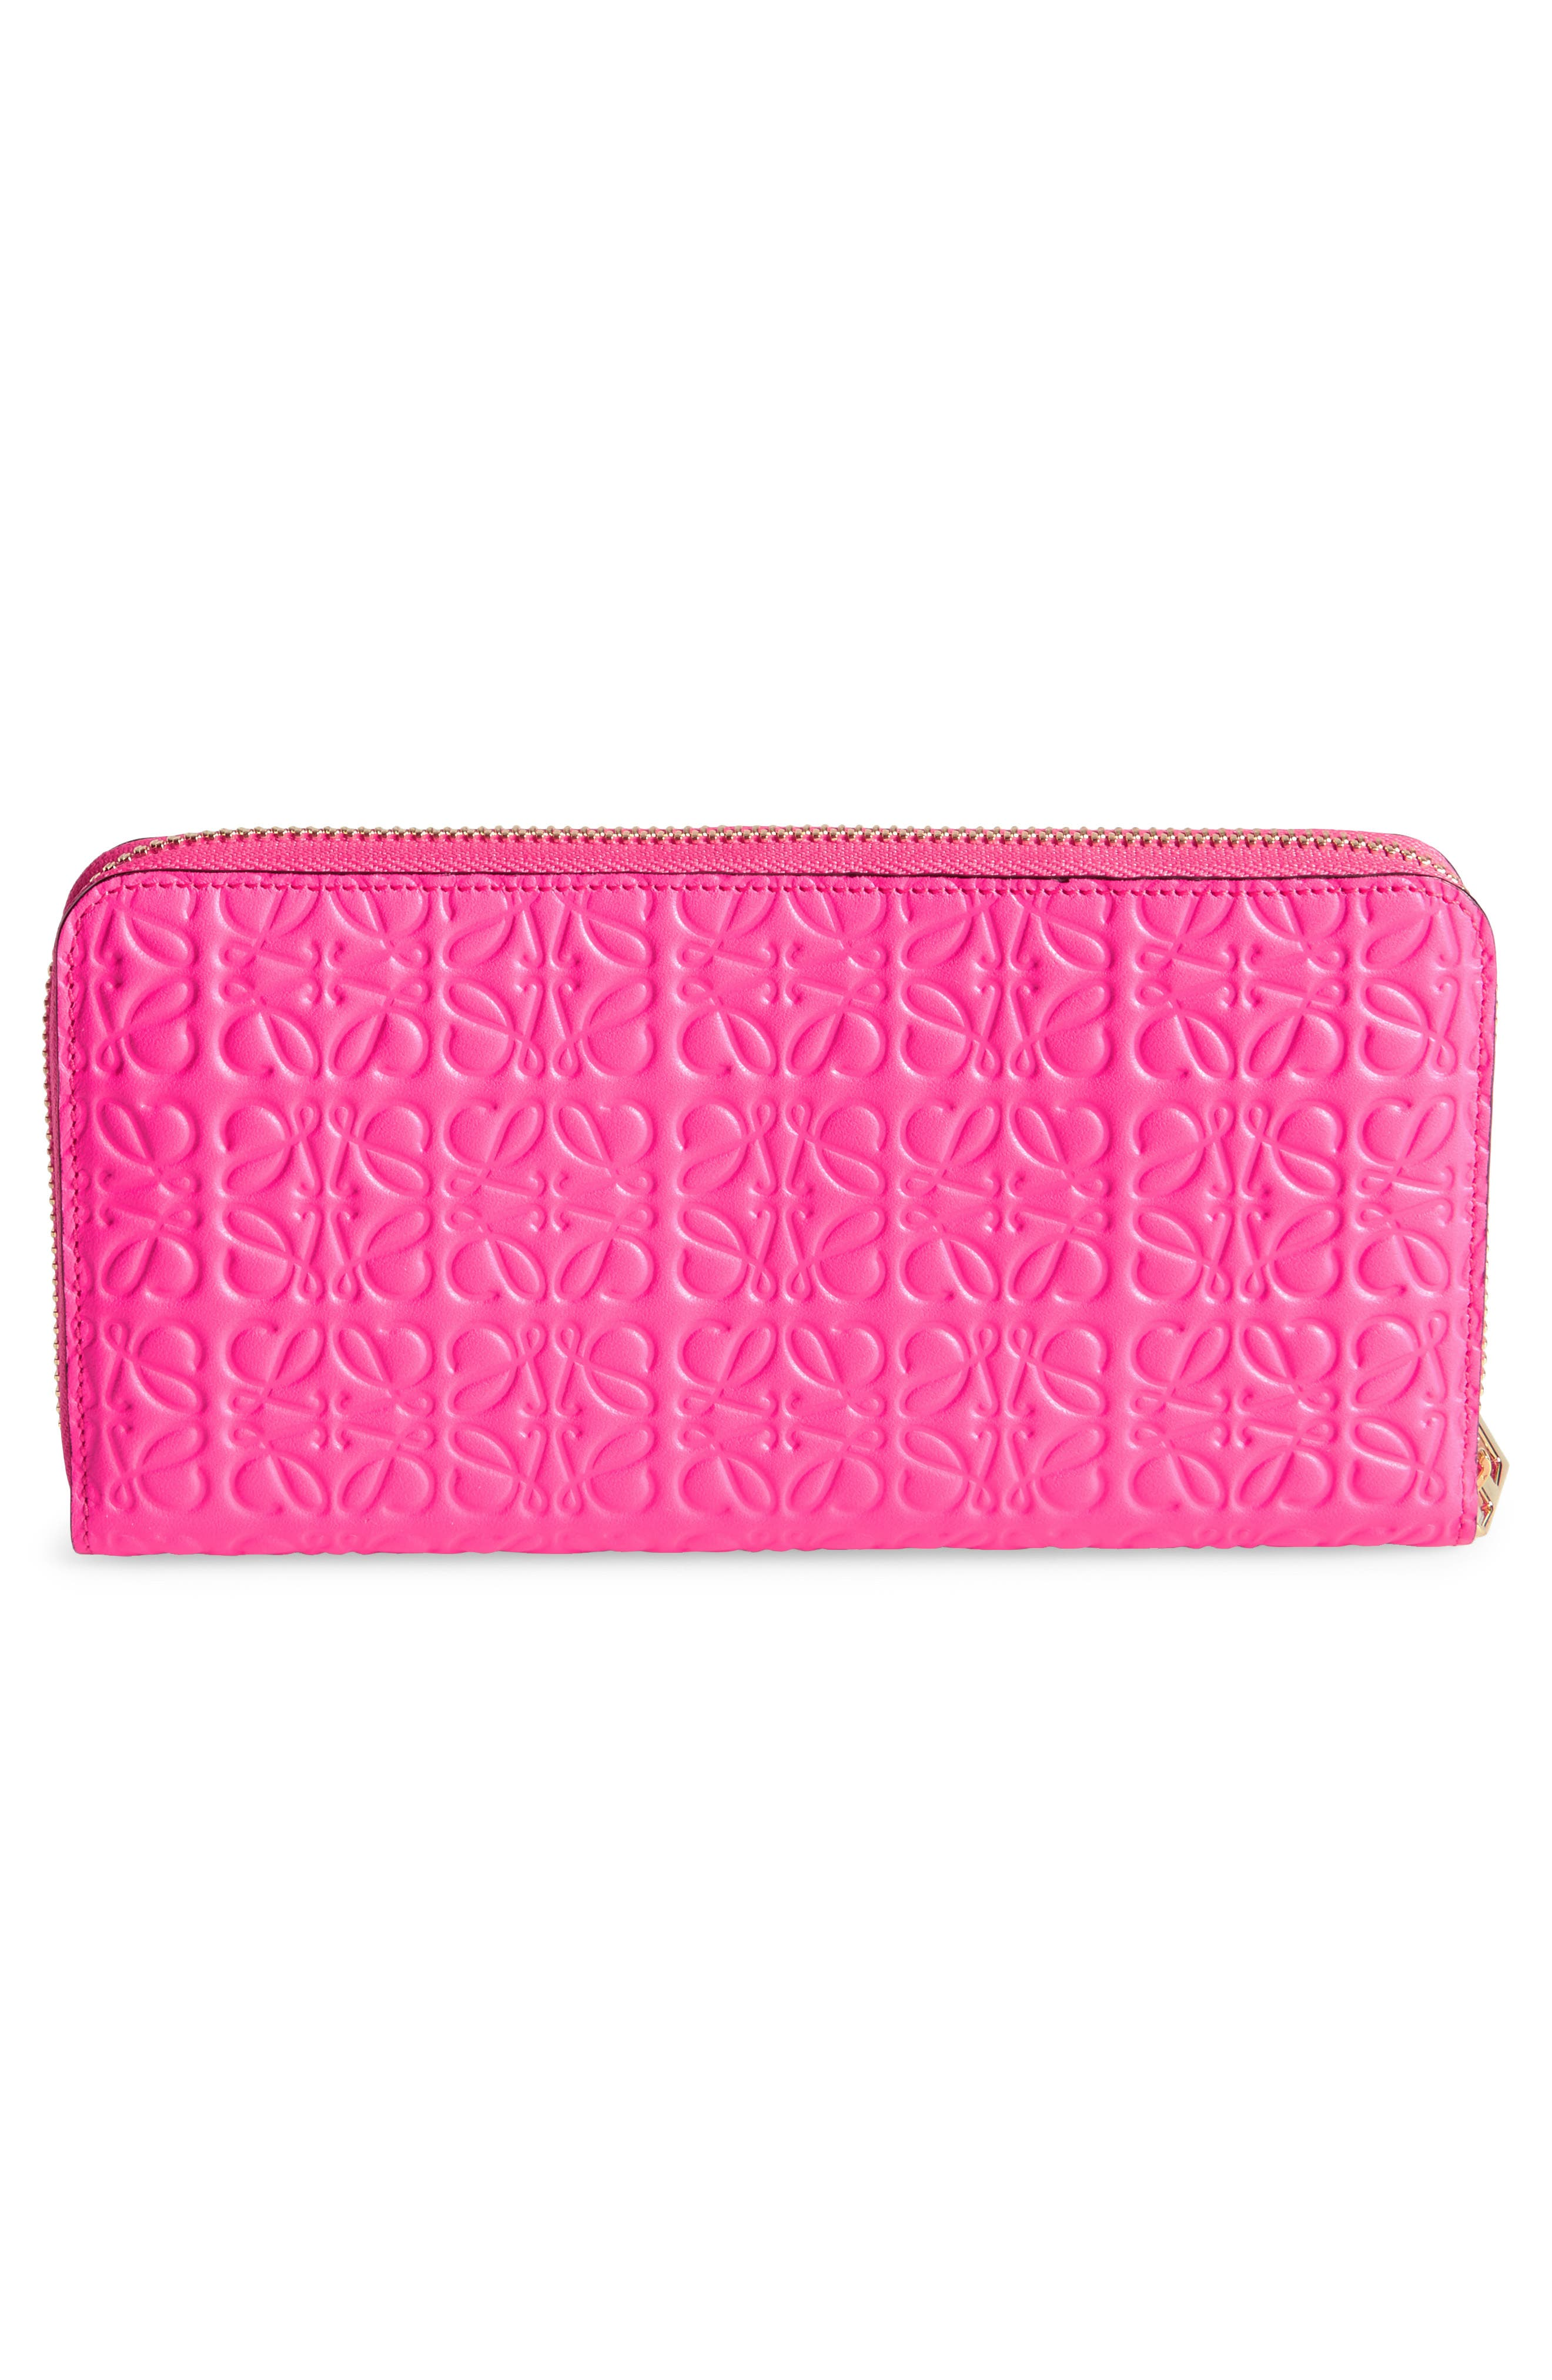 Leather Zip Around Wallet,                             Alternate thumbnail 3, color,                             690